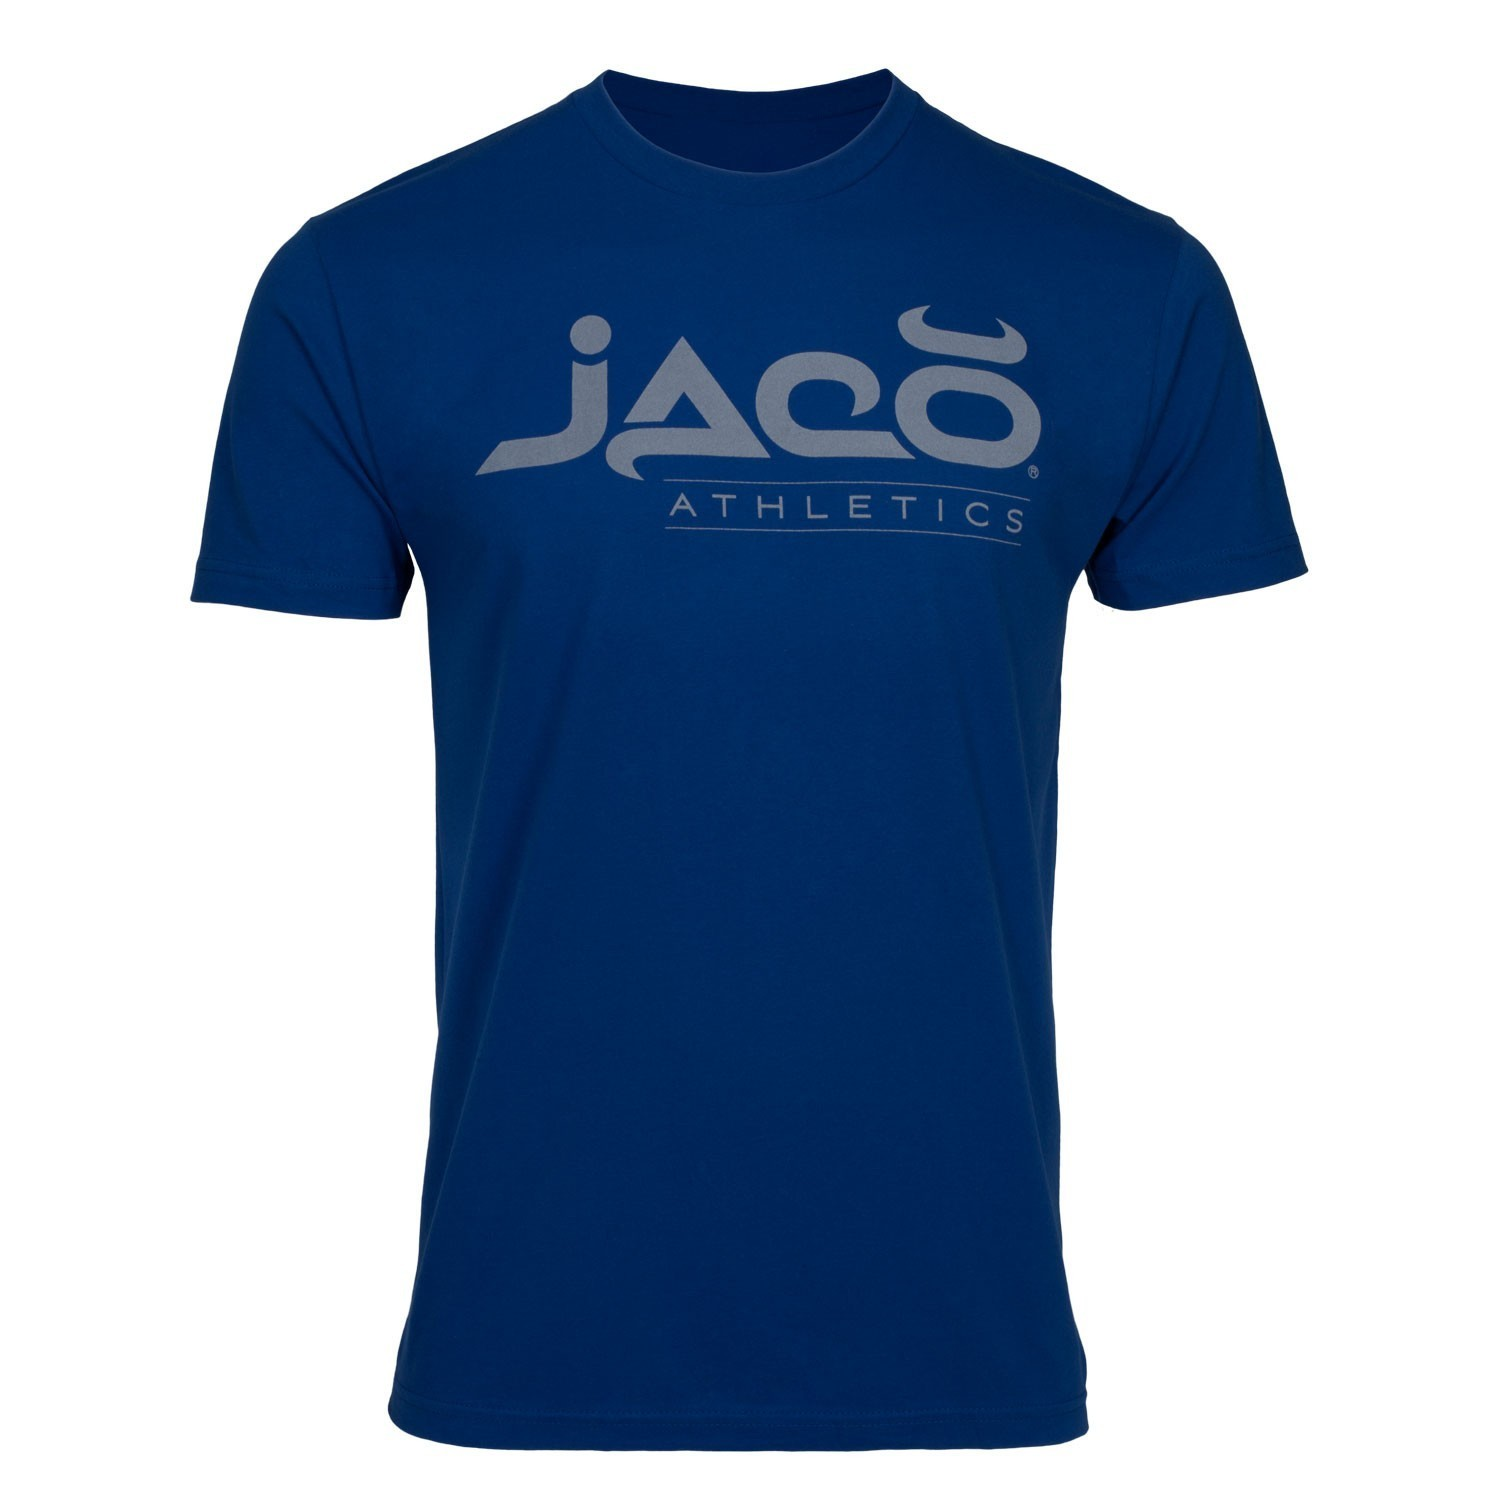 JACO Athletics Crew (Royal Blue/Silver)